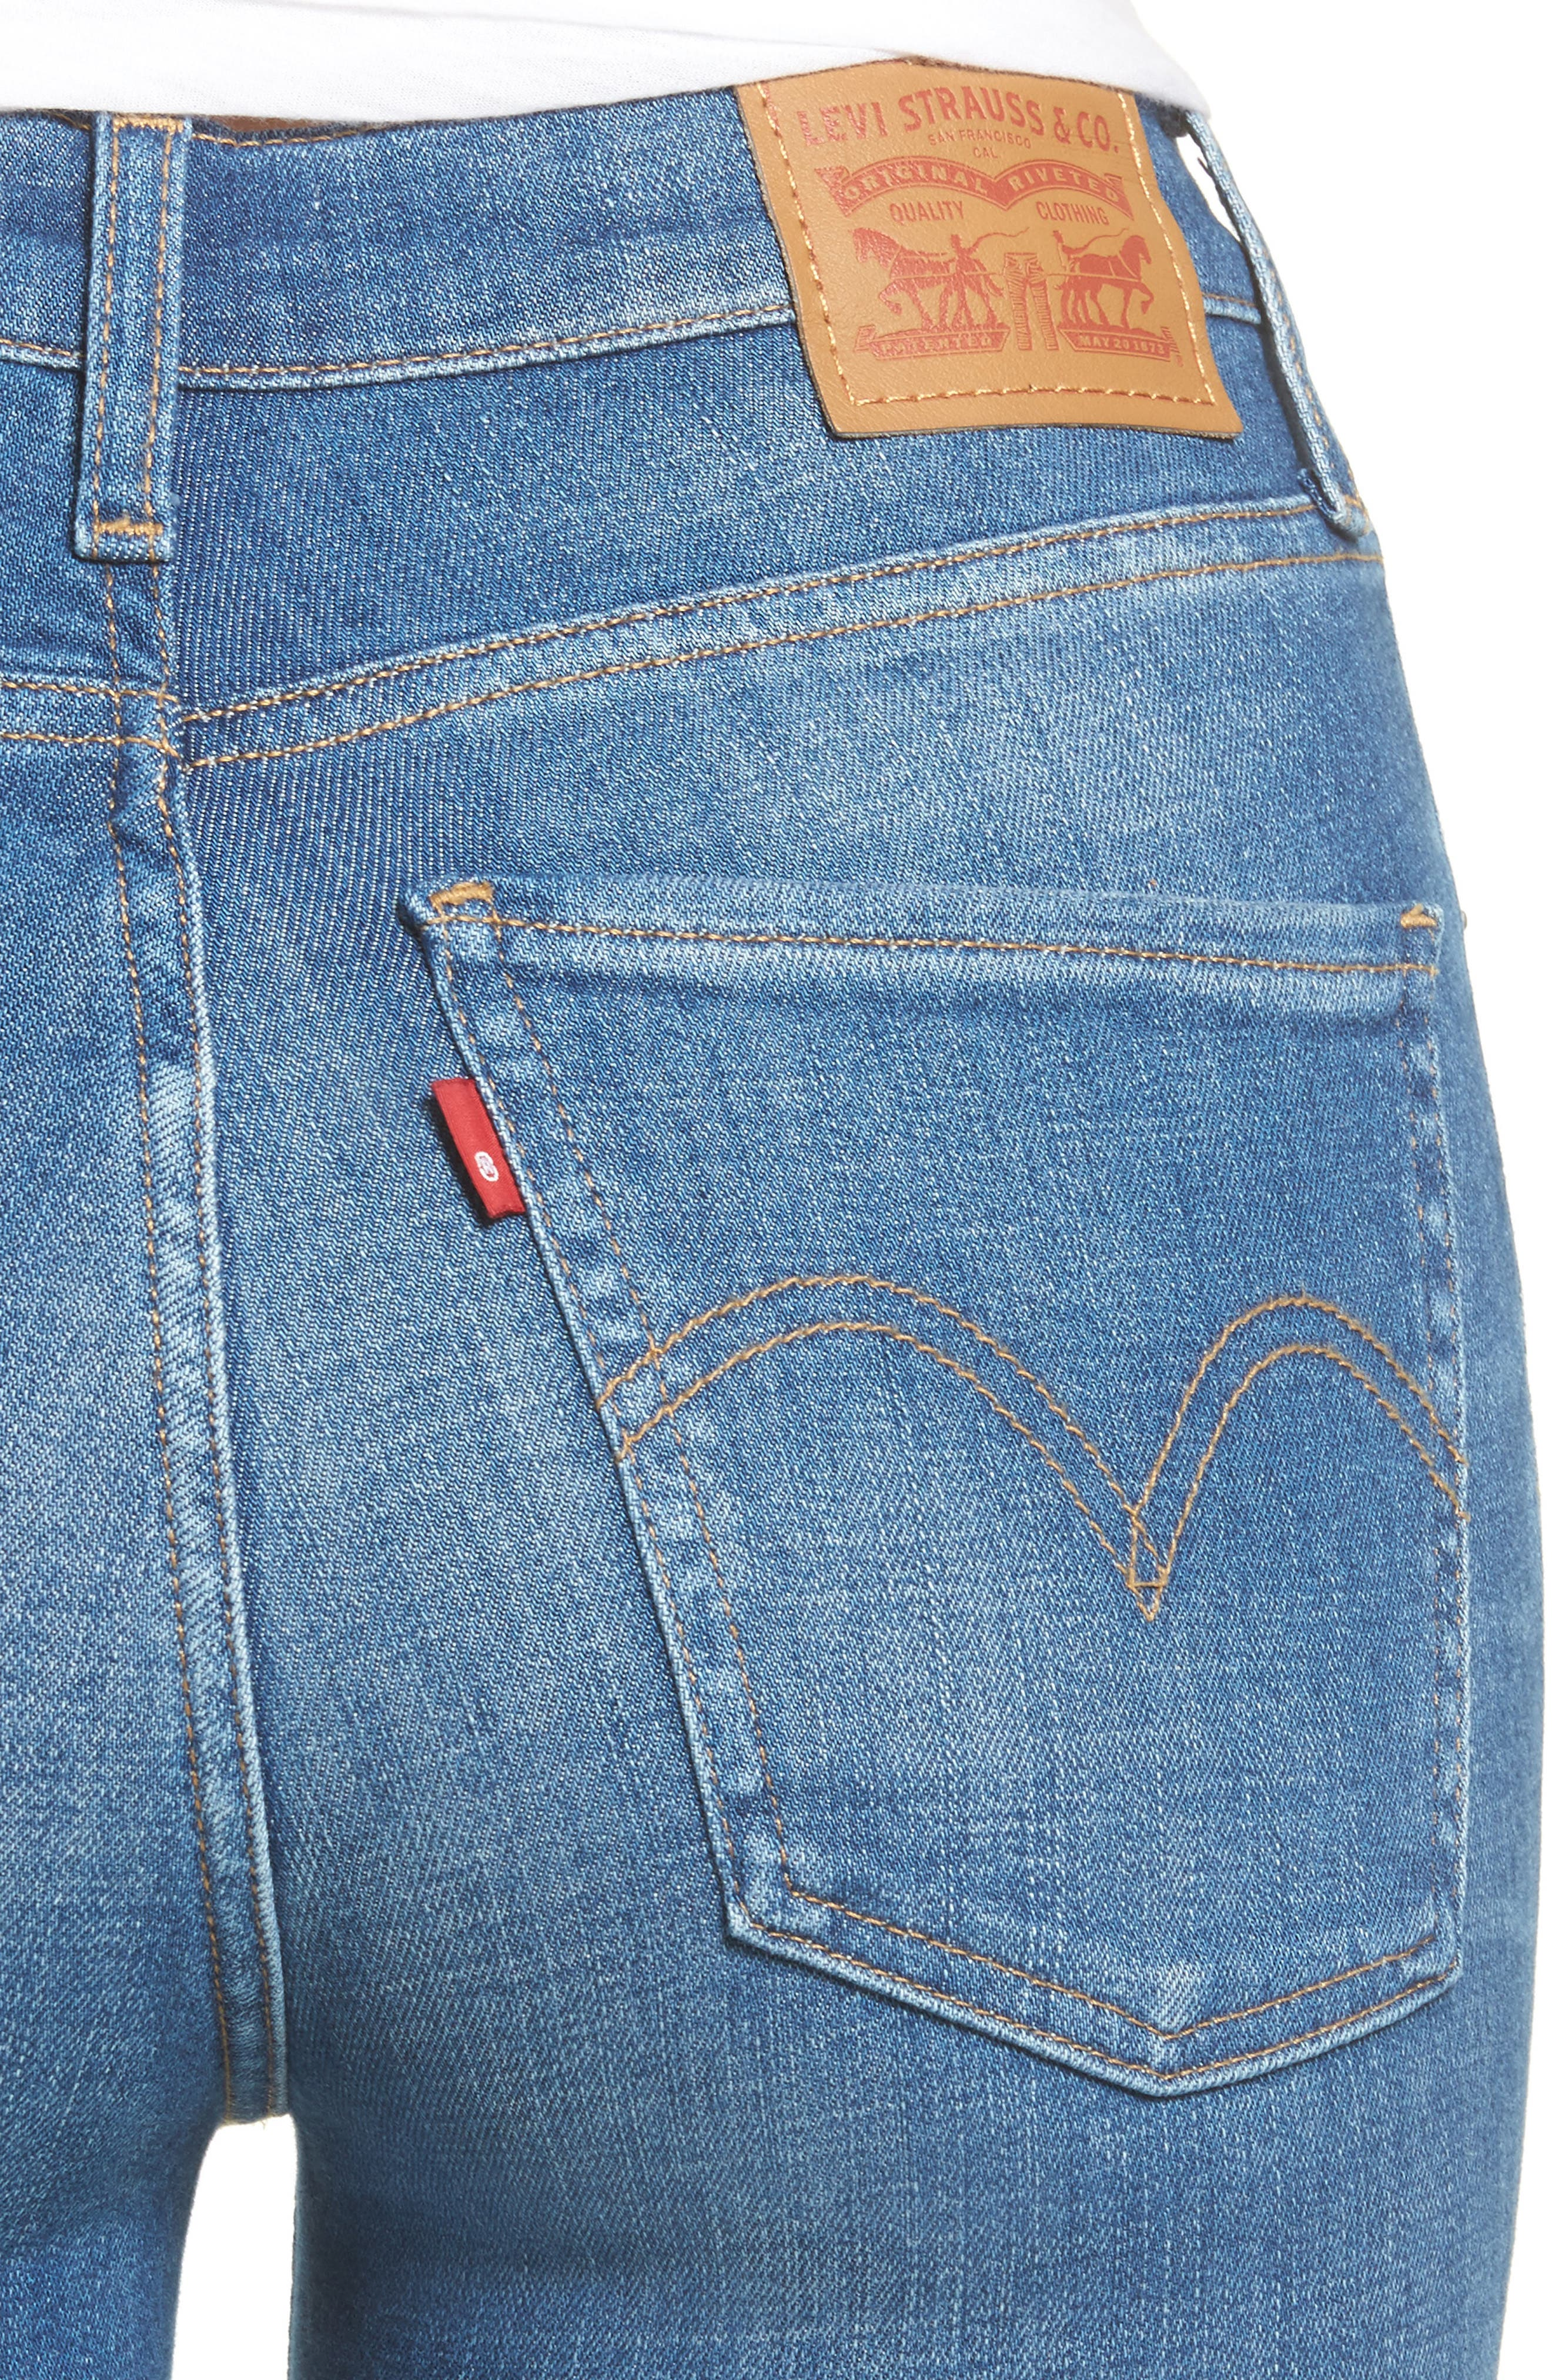 Mile High Skinny Jeans,                             Alternate thumbnail 4, color,